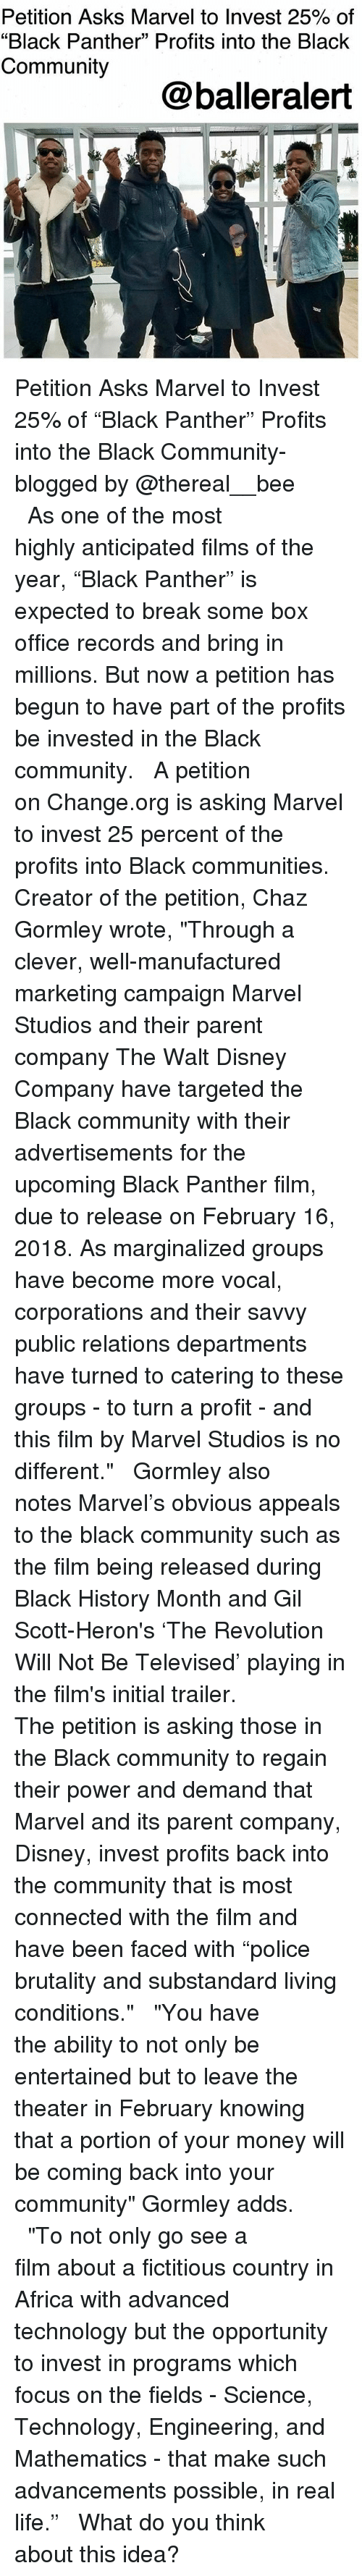 "Africa, Black History Month, and Community: Petition Asks Marvel to Invest 25% of  ""Black Panther"" Profits into the Black  Community  @balleralert Petition Asks Marvel to Invest 25% of ""Black Panther"" Profits into the Black Community-blogged by @thereal__bee ⠀⠀⠀⠀⠀⠀⠀⠀⠀ ⠀⠀ As one of the most highly anticipated films of the year, ""Black Panther"" is expected to break some box office records and bring in millions. But now a petition has begun to have part of the profits be invested in the Black community. ⠀⠀⠀⠀⠀⠀⠀⠀⠀ ⠀⠀ A petition on Change.org is asking Marvel to invest 25 percent of the profits into Black communities. Creator of the petition, Chaz Gormley wrote, ""Through a clever, well-manufactured marketing campaign Marvel Studios and their parent company The Walt Disney Company have targeted the Black community with their advertisements for the upcoming Black Panther film, due to release on February 16, 2018. As marginalized groups have become more vocal, corporations and their savvy public relations departments have turned to catering to these groups - to turn a profit - and this film by Marvel Studios is no different."" ⠀⠀⠀⠀⠀⠀⠀⠀⠀ ⠀⠀ Gormley also notes Marvel's obvious appeals to the black community such as the film being released during Black History Month and Gil Scott-Heron's 'The Revolution Will Not Be Televised' playing in the film's initial trailer. ⠀⠀⠀⠀⠀⠀⠀⠀⠀ ⠀⠀ The petition is asking those in the Black community to regain their power and demand that Marvel and its parent company, Disney, invest profits back into the community that is most connected with the film and have been faced with ""police brutality and substandard living conditions."" ⠀⠀⠀⠀⠀⠀⠀⠀⠀ ⠀⠀ ""You have the ability to not only be entertained but to leave the theater in February knowing that a portion of your money will be coming back into your community"" Gormley adds. ⠀⠀⠀⠀⠀⠀⠀⠀⠀ ⠀⠀ ""To not only go see a film about a fictitious country in Africa with advanced technology but the opportunity to invest in programs which focus on the fields - Science, Technology, Engineering, and Mathematics - that make such advancements possible, in real life."" ⠀⠀⠀⠀⠀⠀⠀⠀⠀ ⠀⠀ What do you think about this idea?"